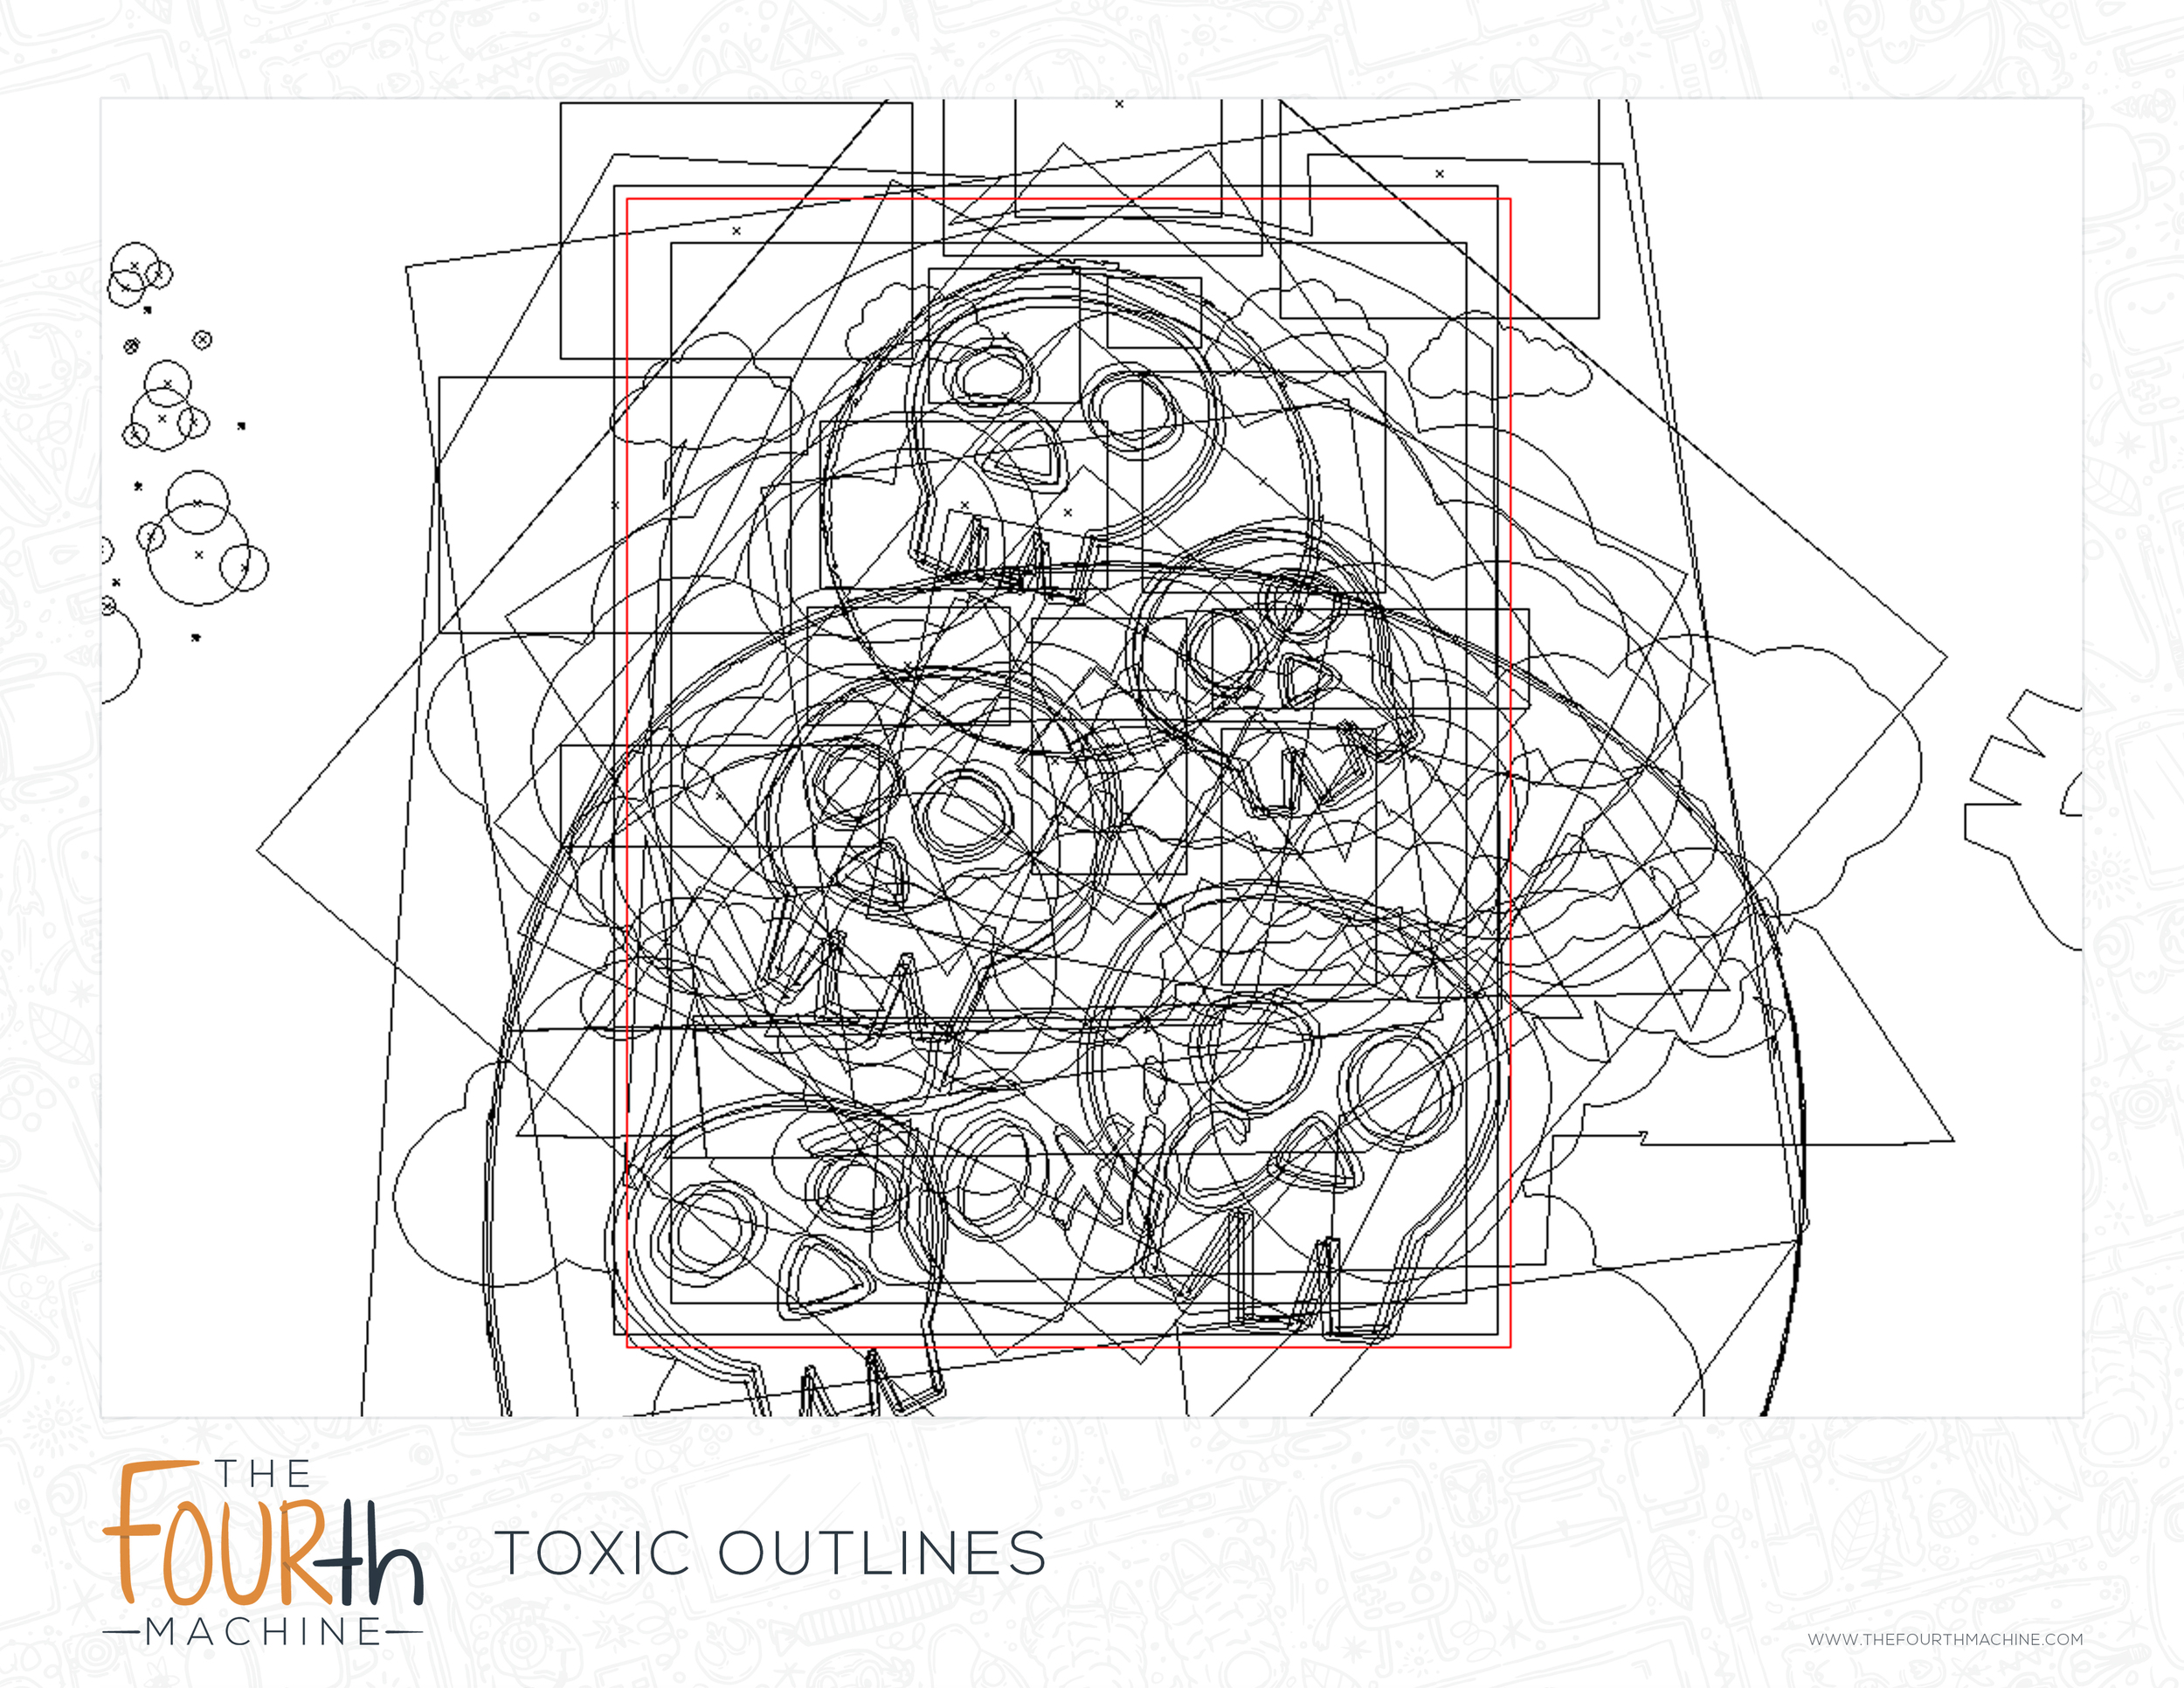 Toxic Outlines.jpg